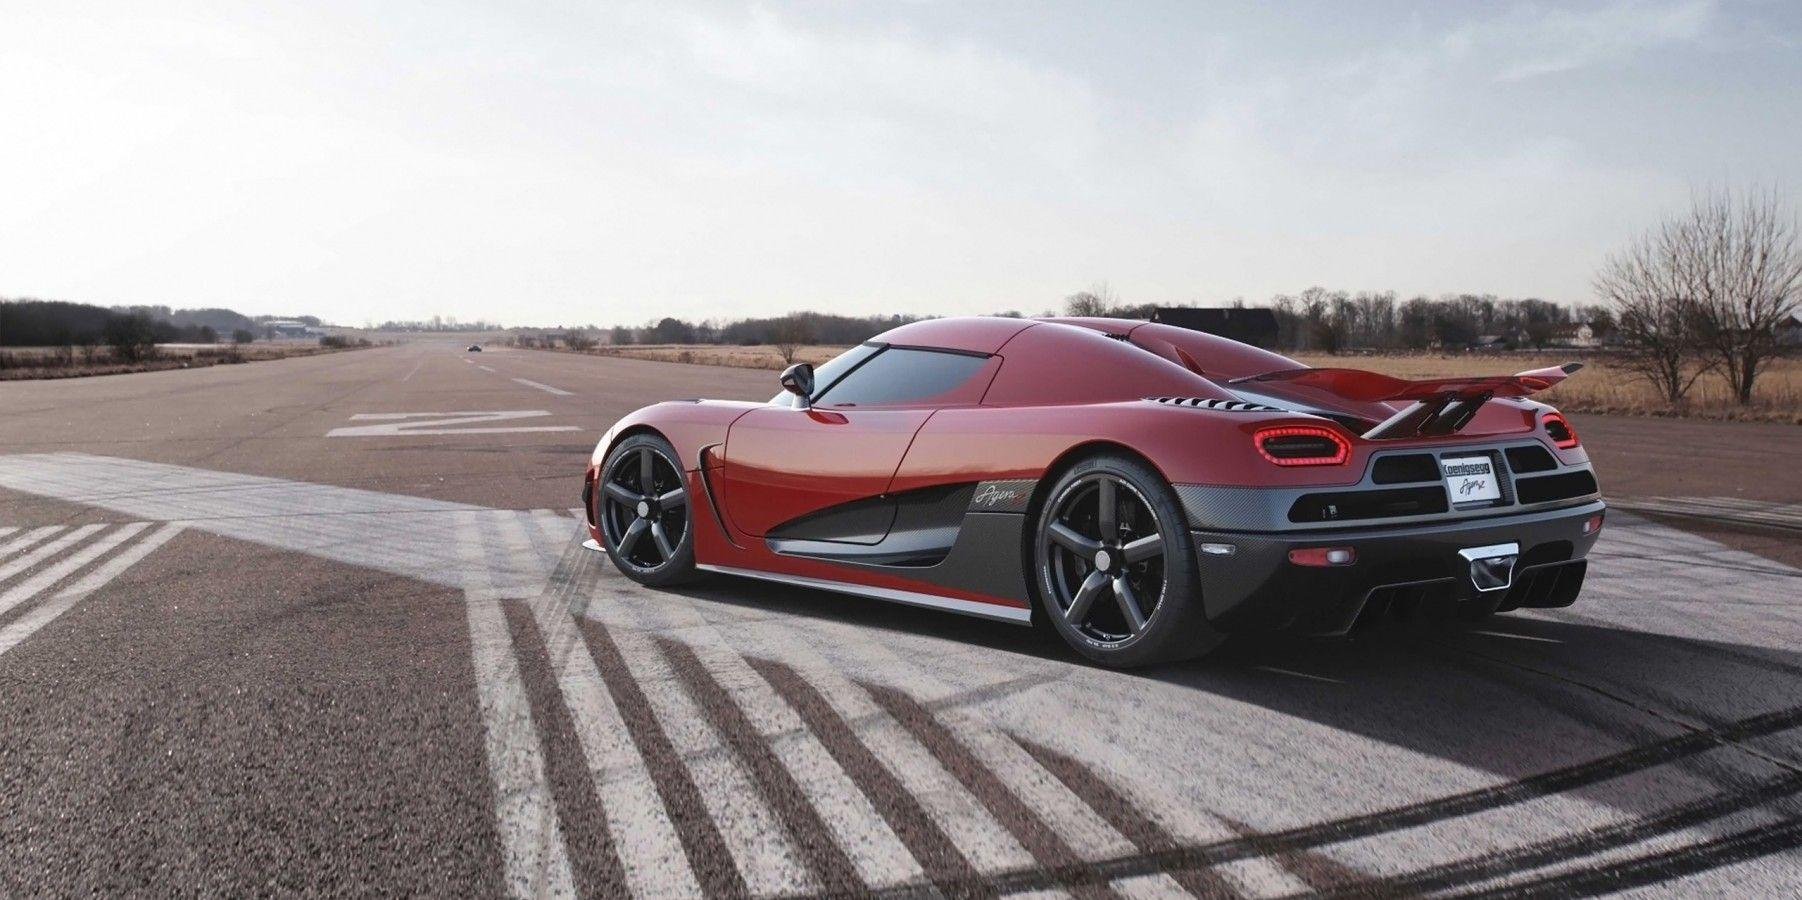 Download 1802x900 Koenigsegg Agera R, Red, Side View, Sport, Cars